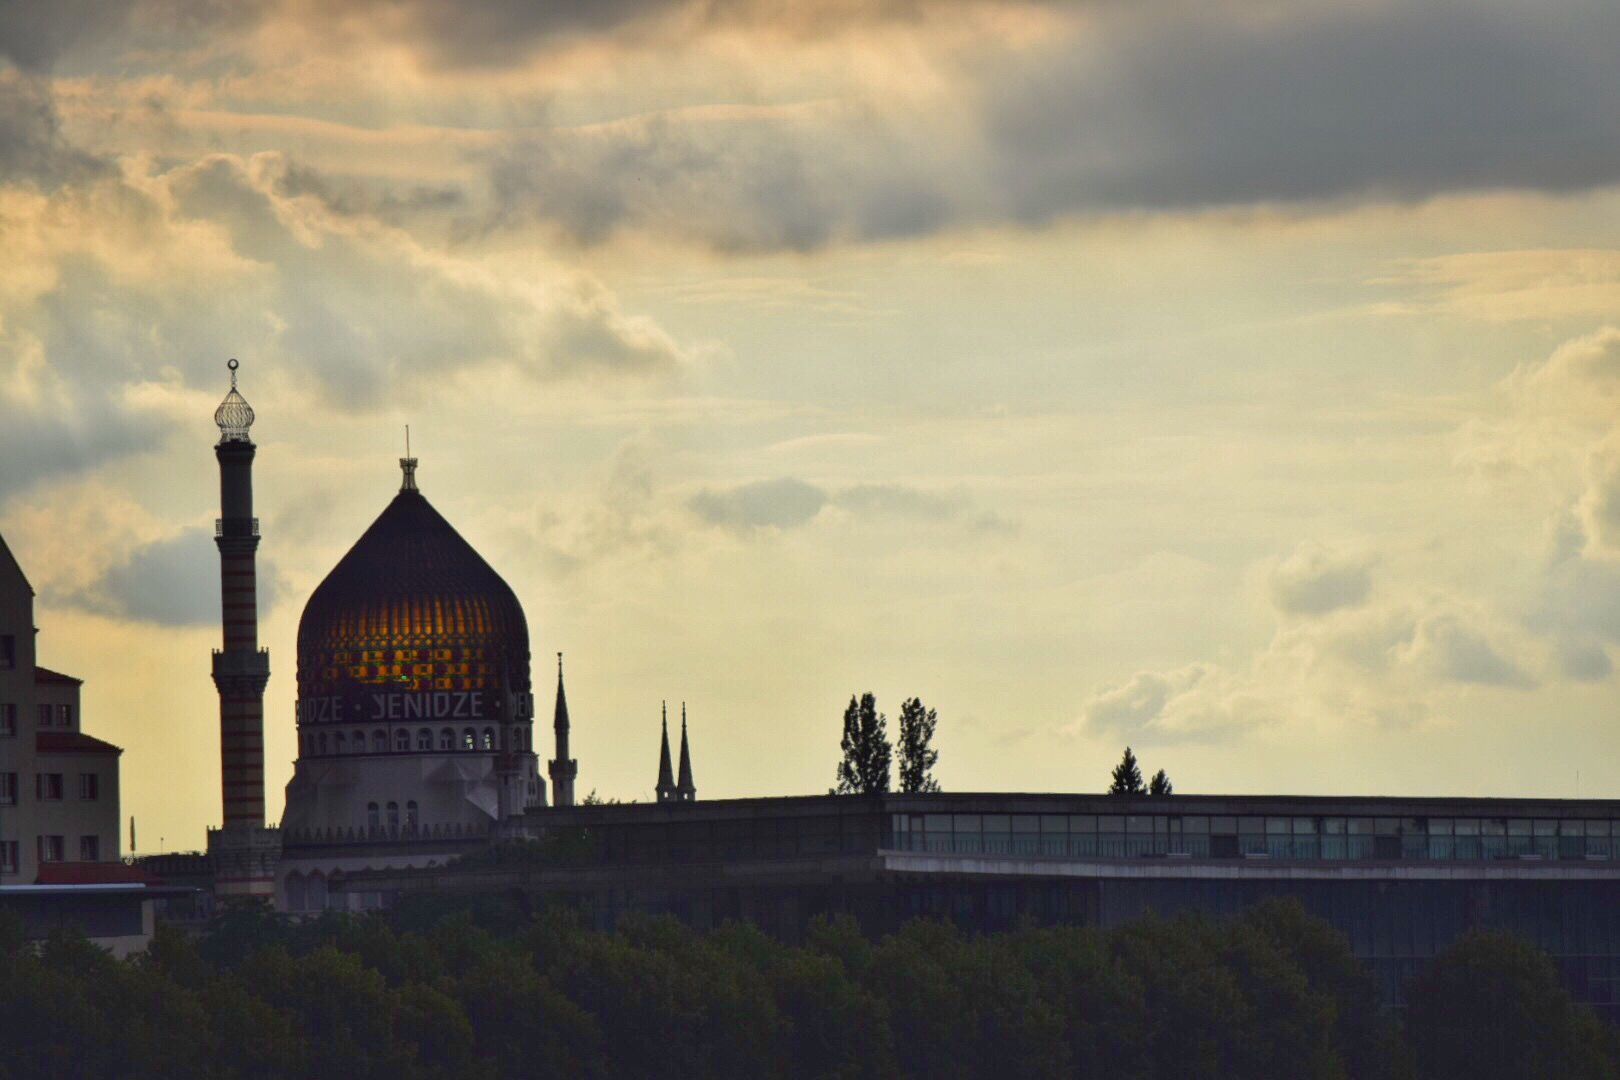 From the Reichstag to Dresden